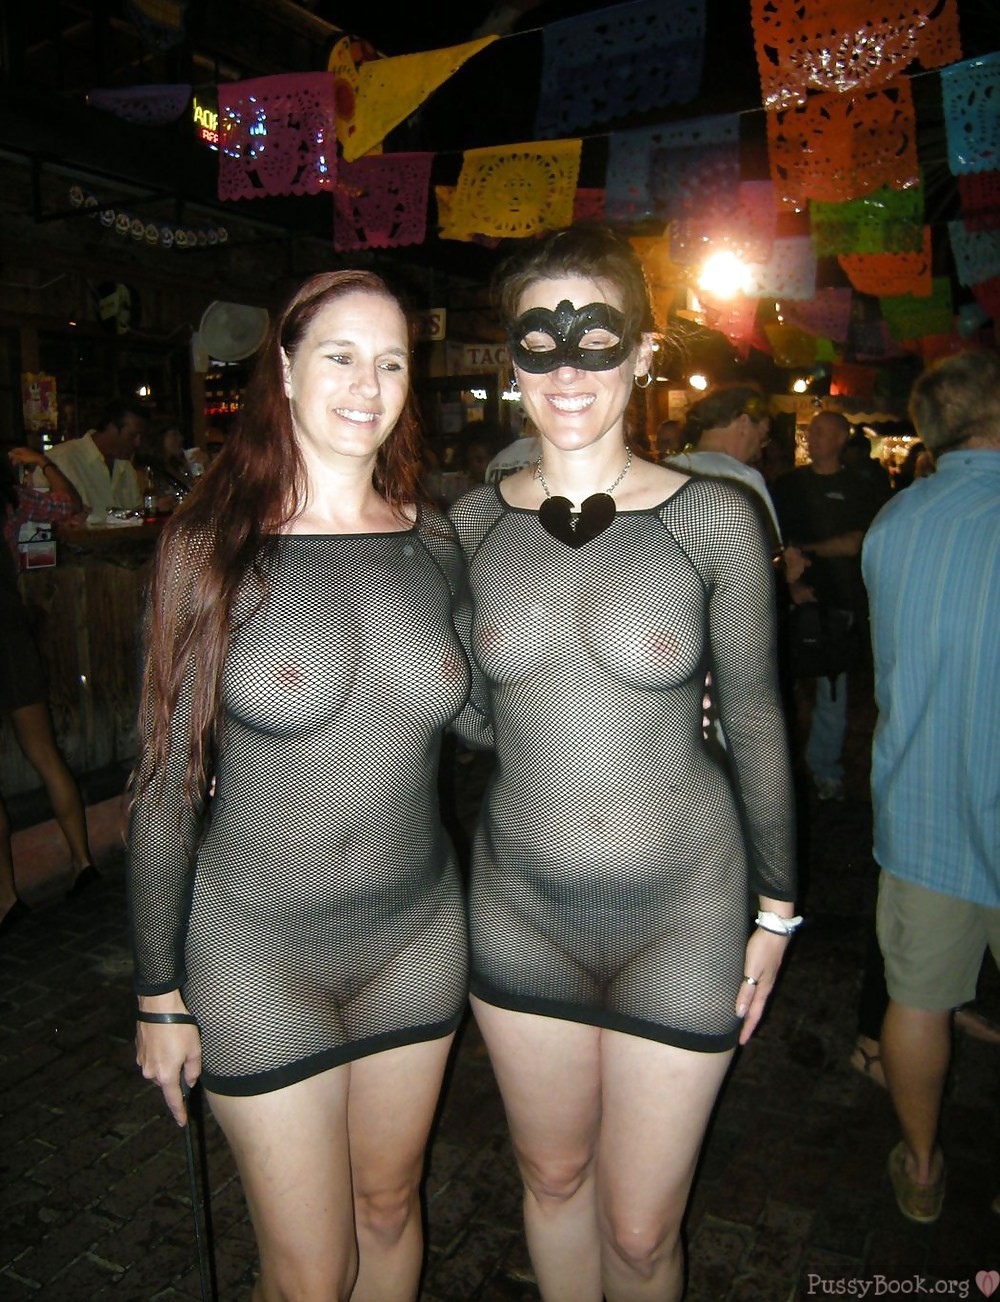 sexy-halloween-two-women-see-through-dresses-in-club